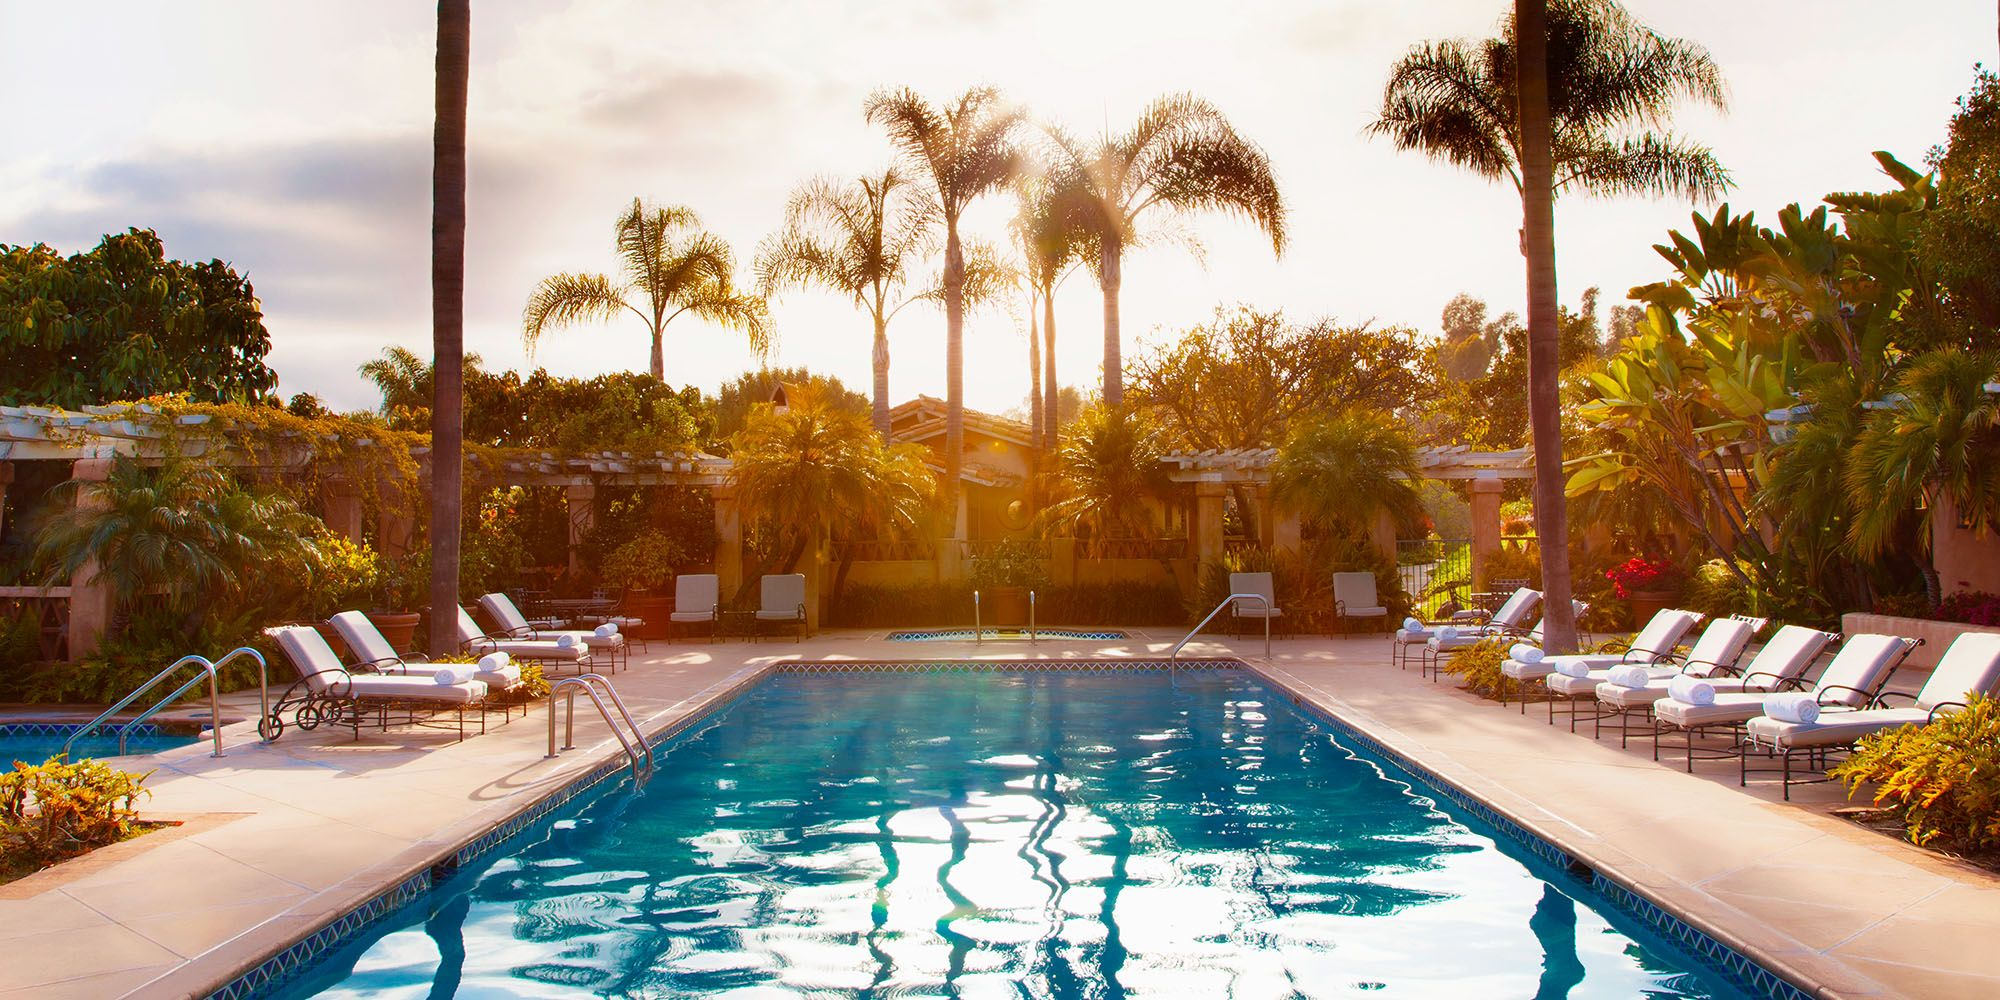 Hotel Swimming Pools Contain Diarrhea and Bacteria, Says CDC